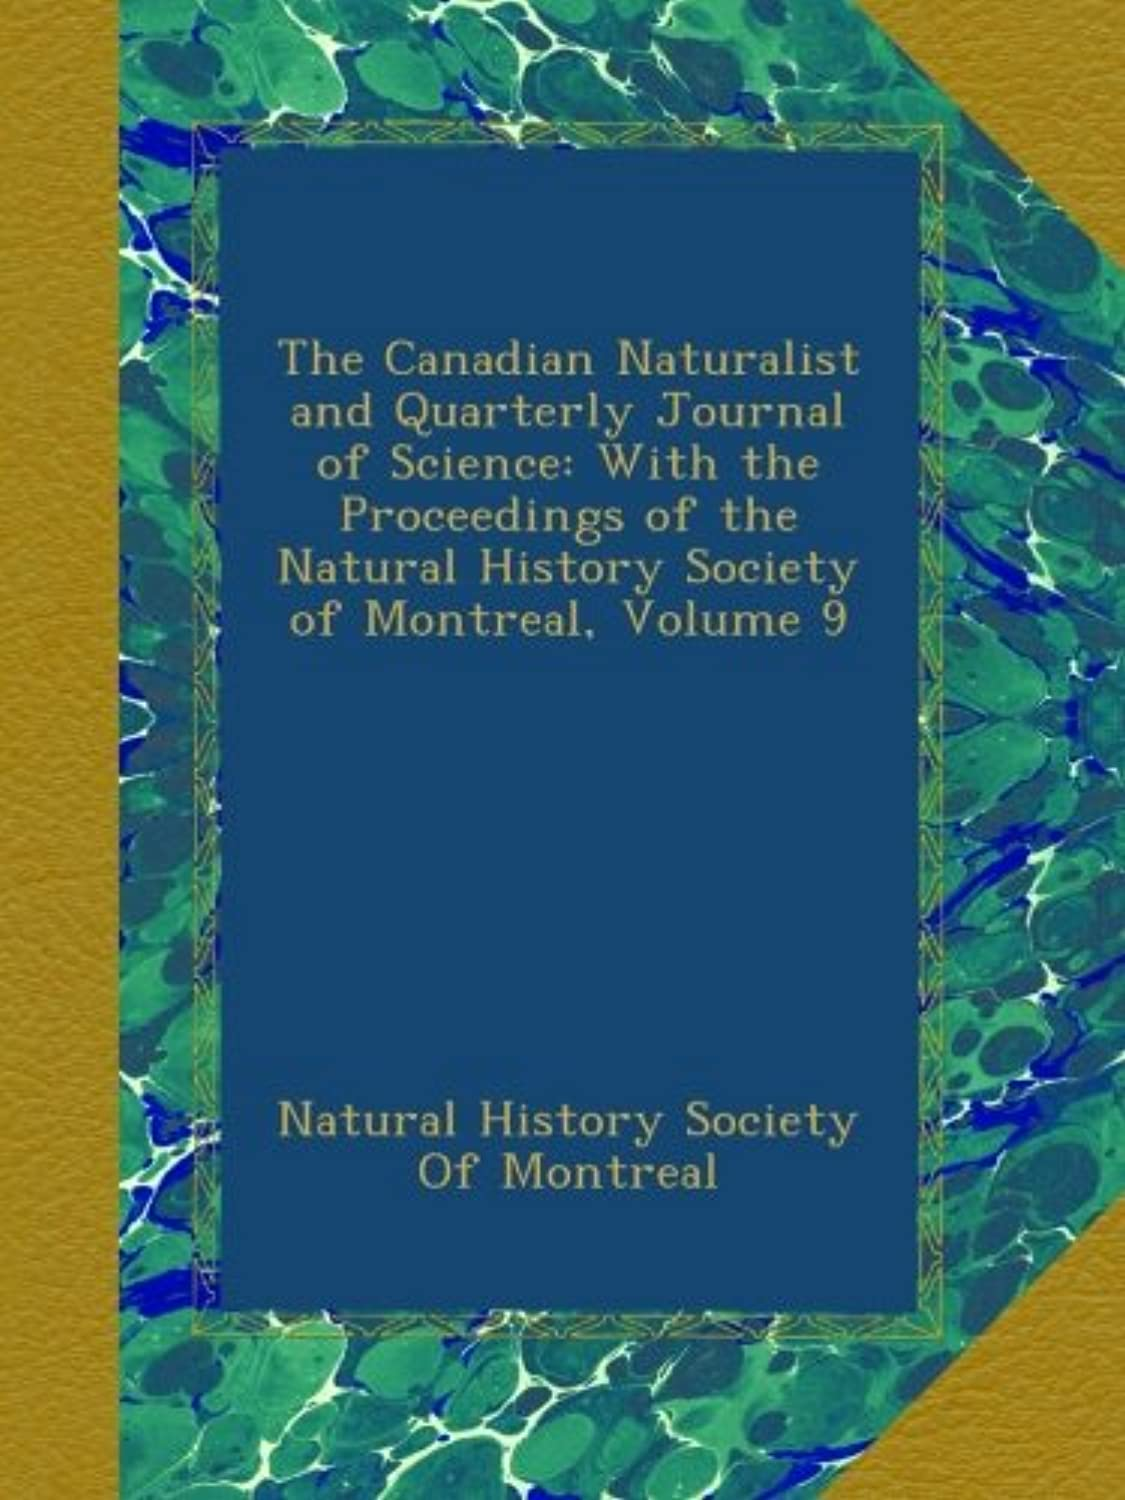 The Canadian Naturalist and Quarterly Journal of Science: With the Proceedings of the Natural History Society of Montreal, Volume 9